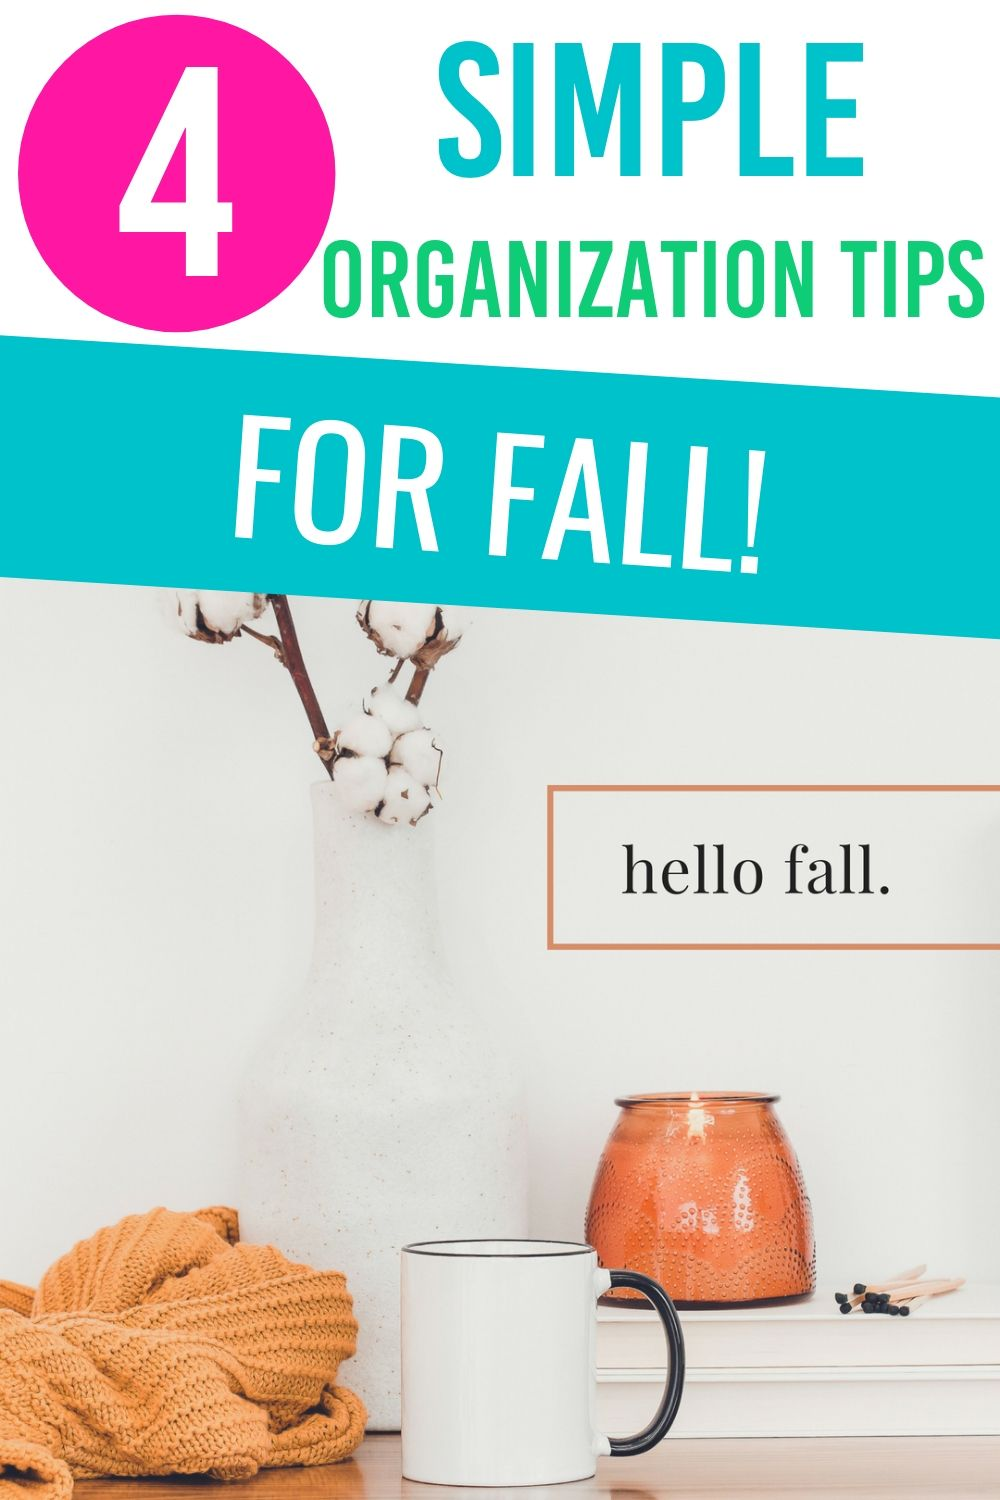 Become organized for fall with these fall organizing tips. Learn what you should focus on before the cold weather hits. #organizing #organizingtips #fall #fallorganizing via @homebyjenn